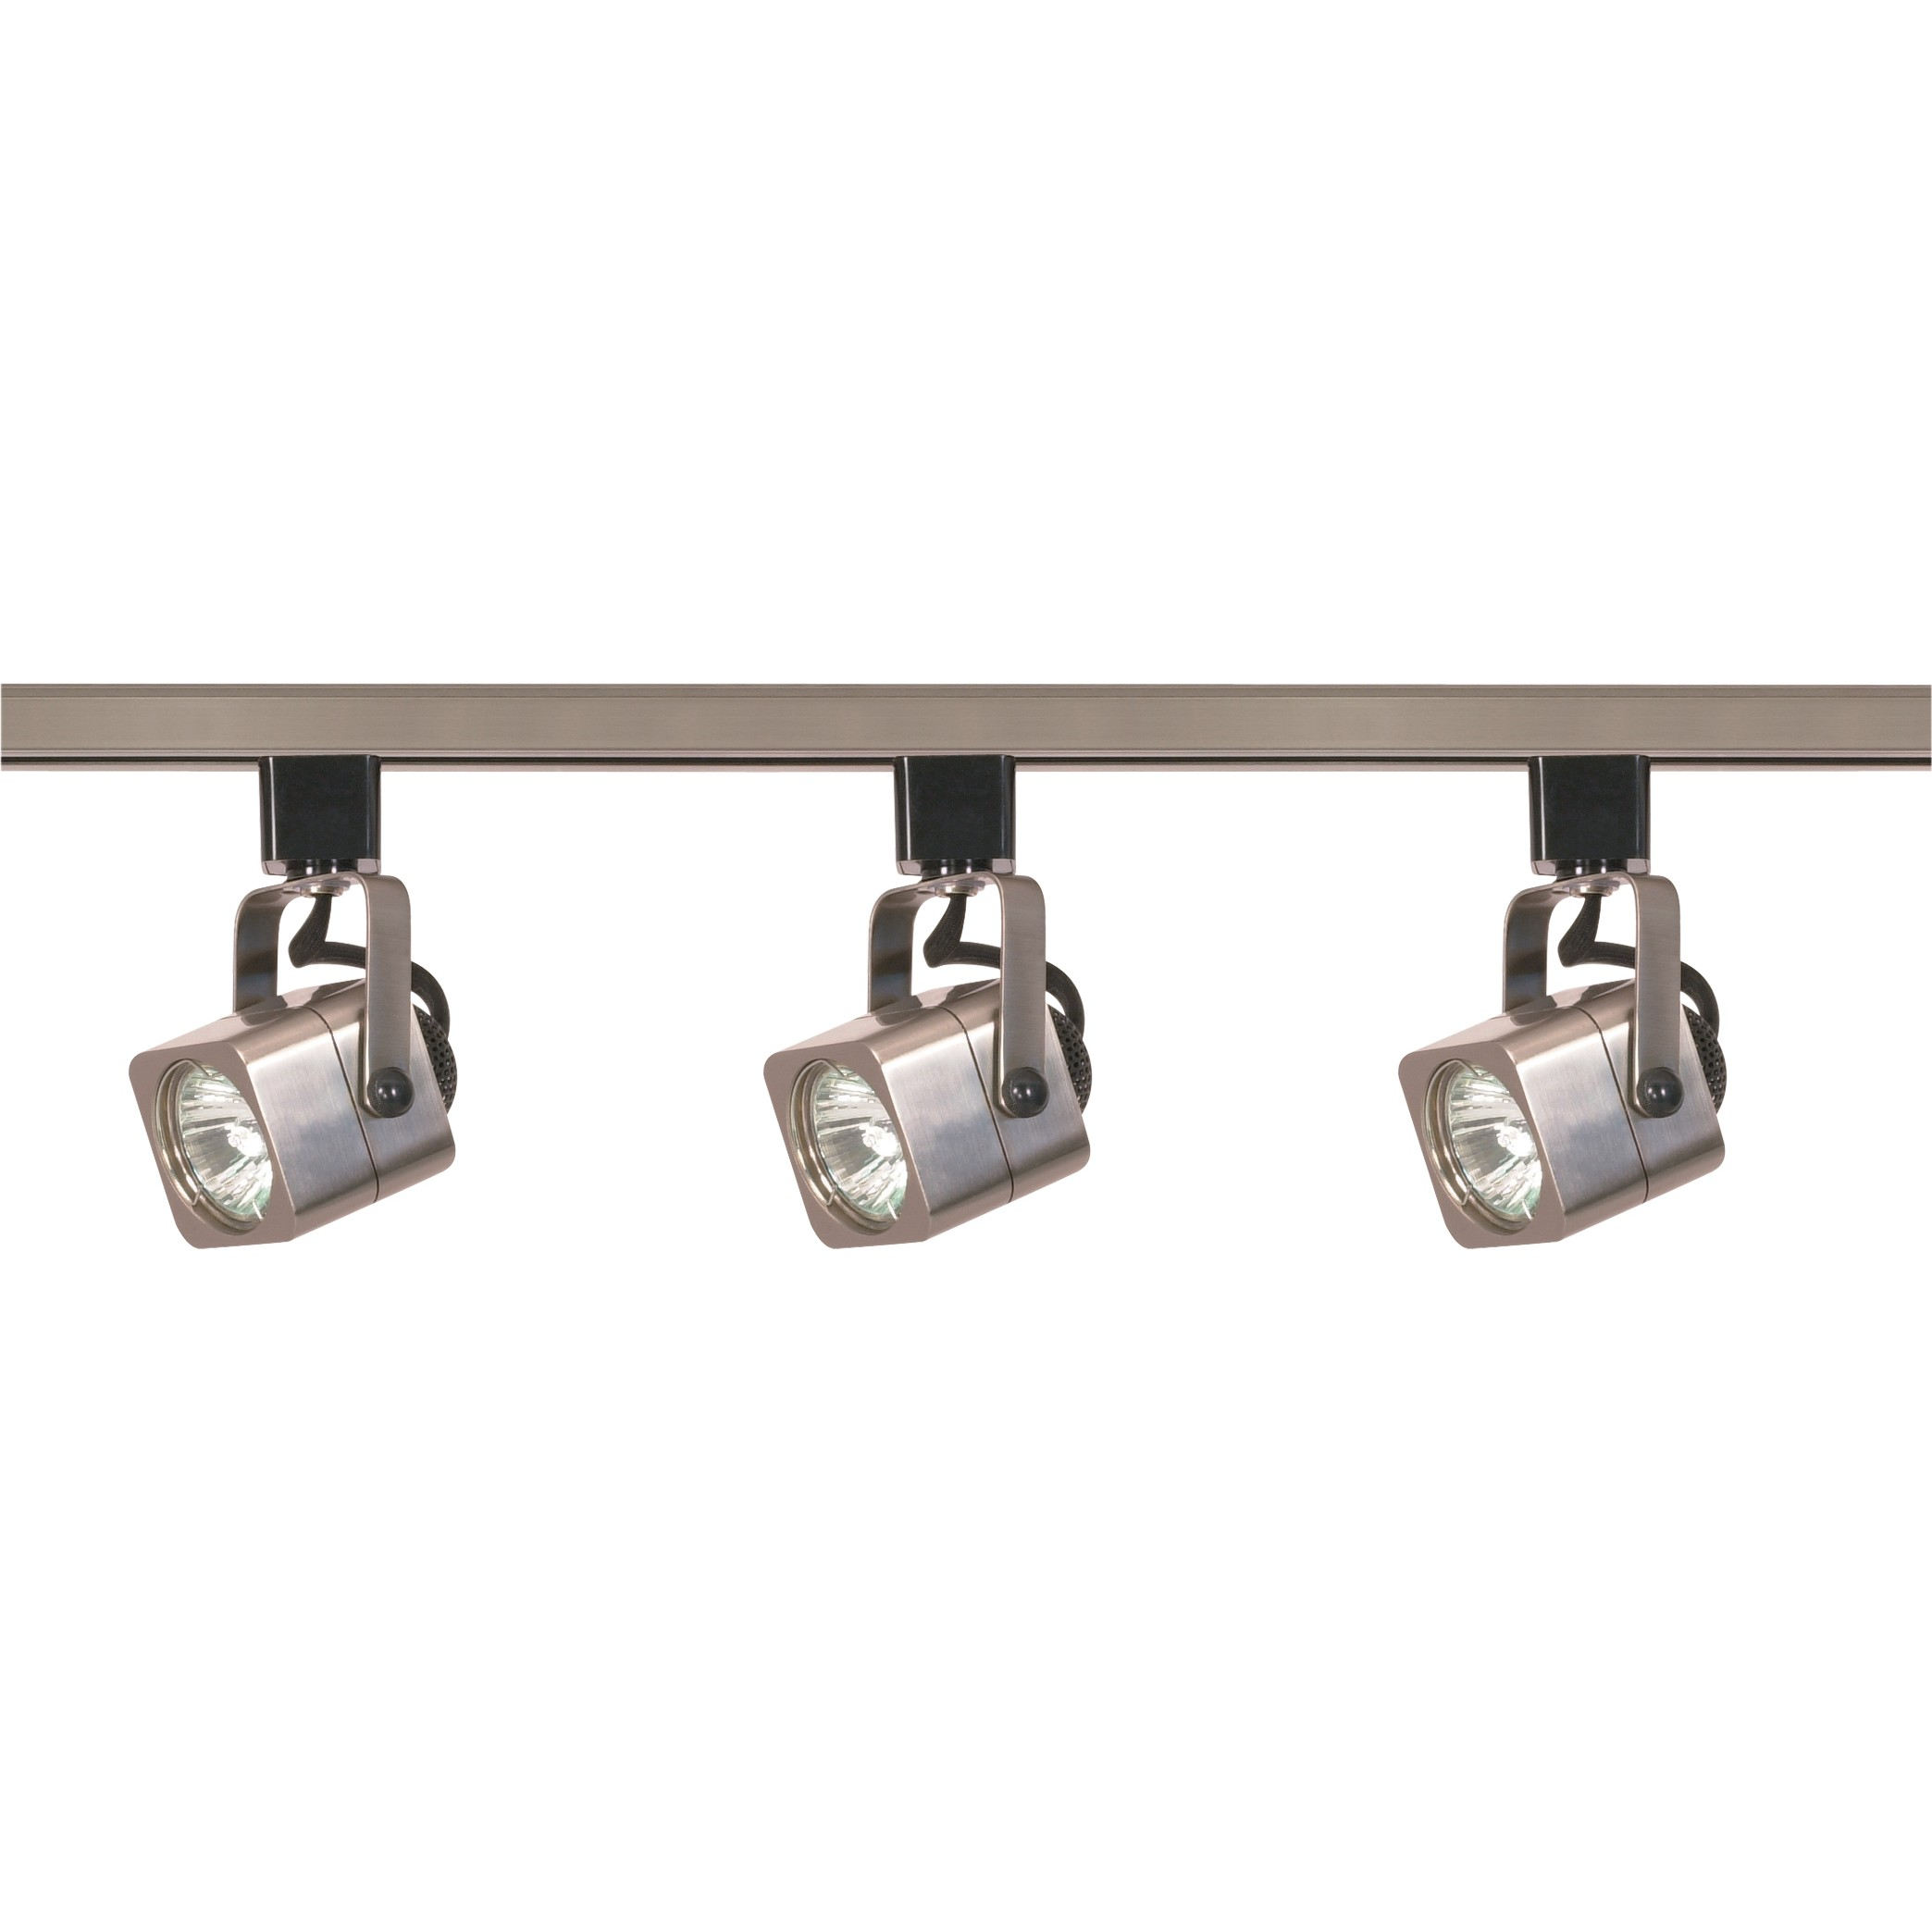 Track lighting rails track lighting rails ideas for family room track lighting rails track lighting rails rails lights ceiling mount pendant led downlighters cabinet aloadofball Images